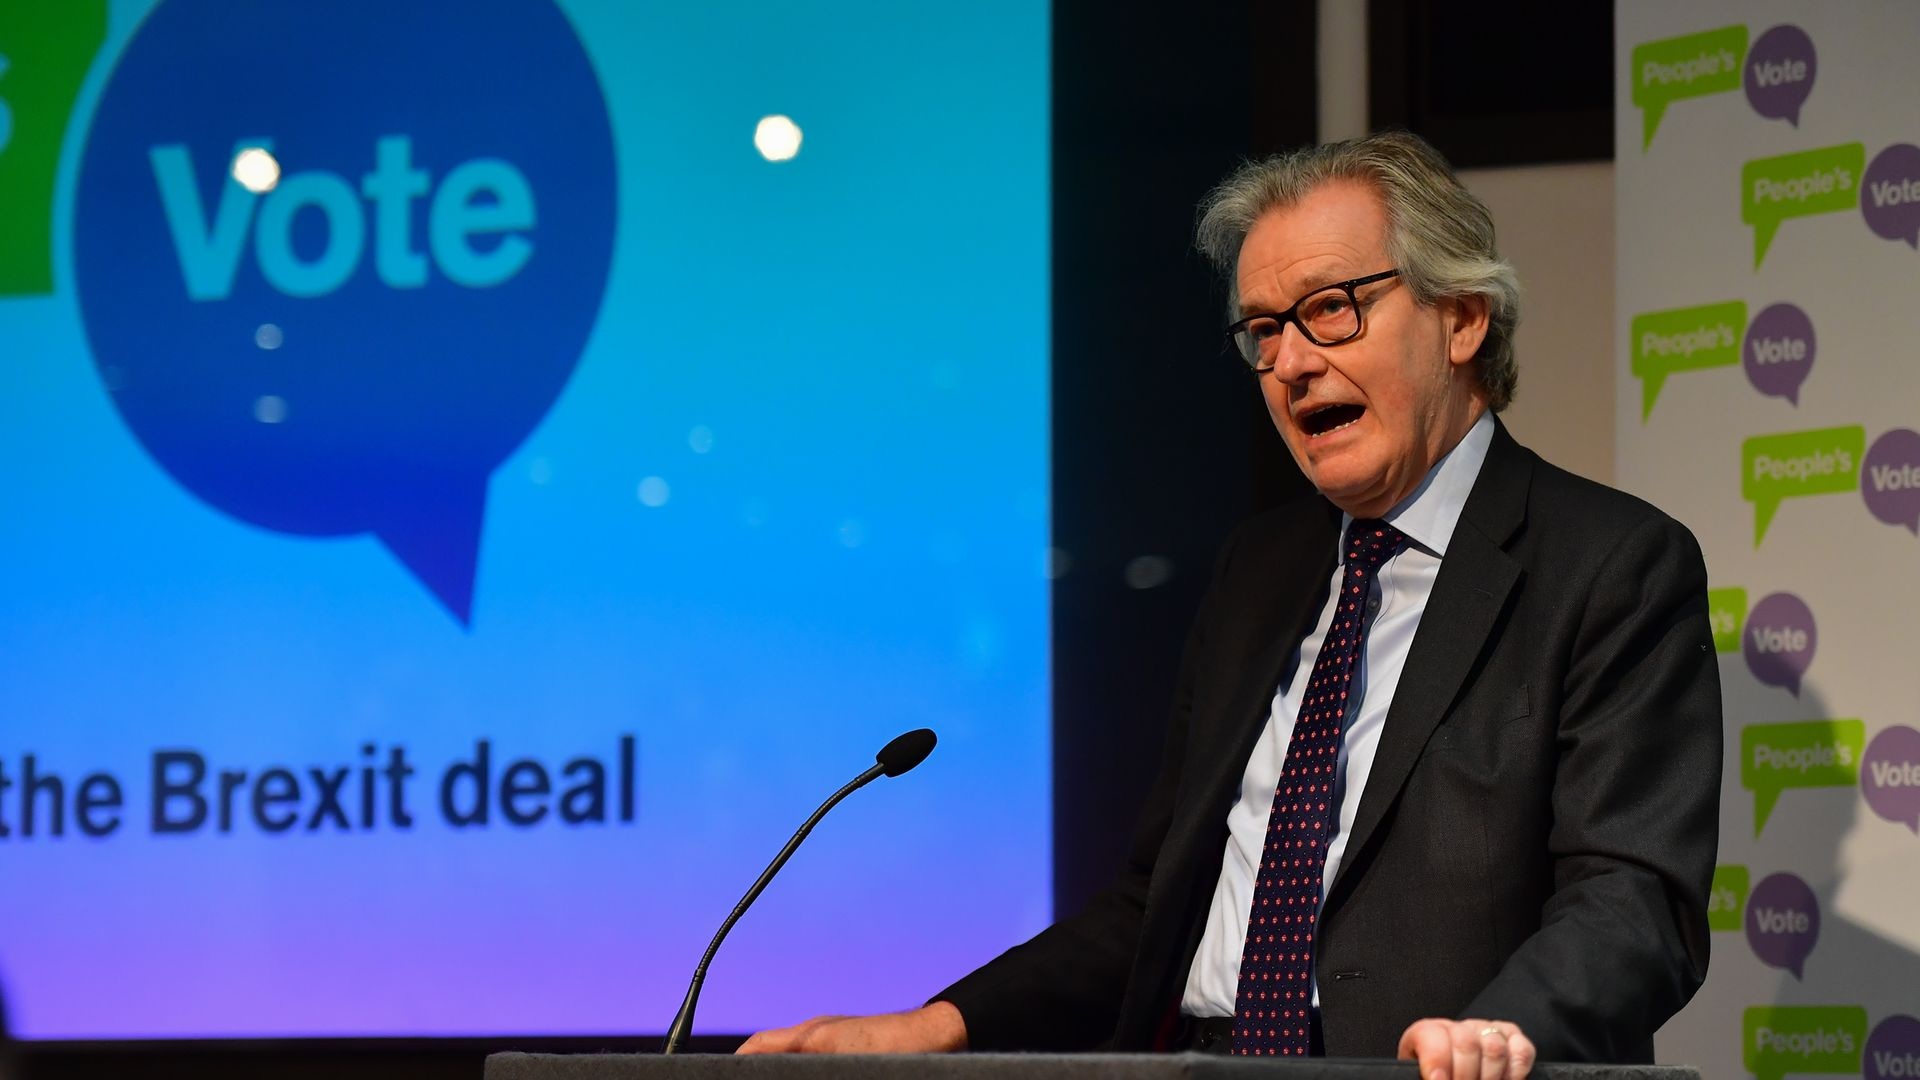 Former health secretary Stephen Dorrell speaking during a People's Vote press conference at the Institution of Civil Engineers in London - Credit: PA